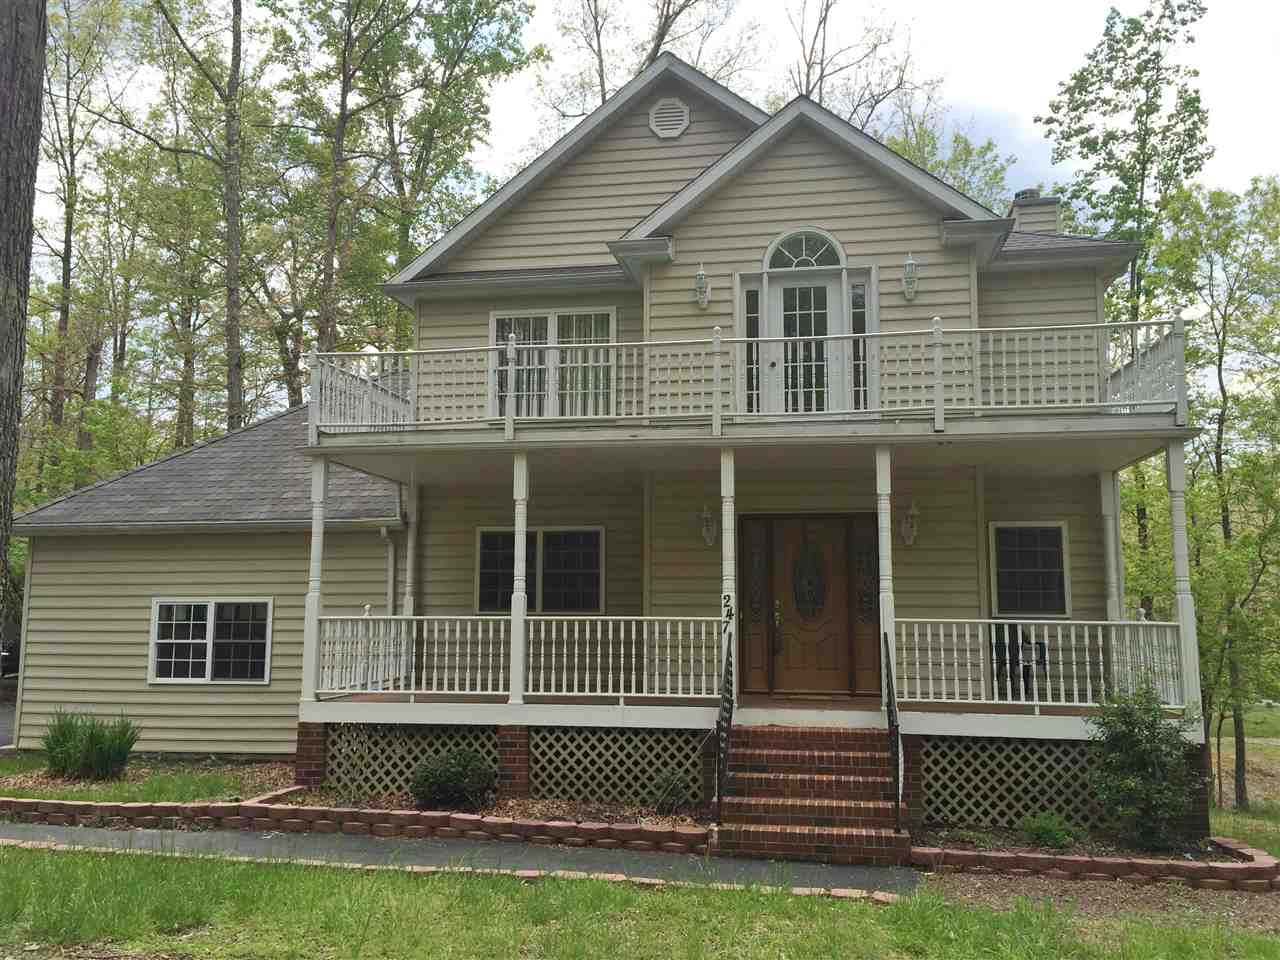 Property for sale at 247 JEFFERSON DR, Palmyra,  VA 22963